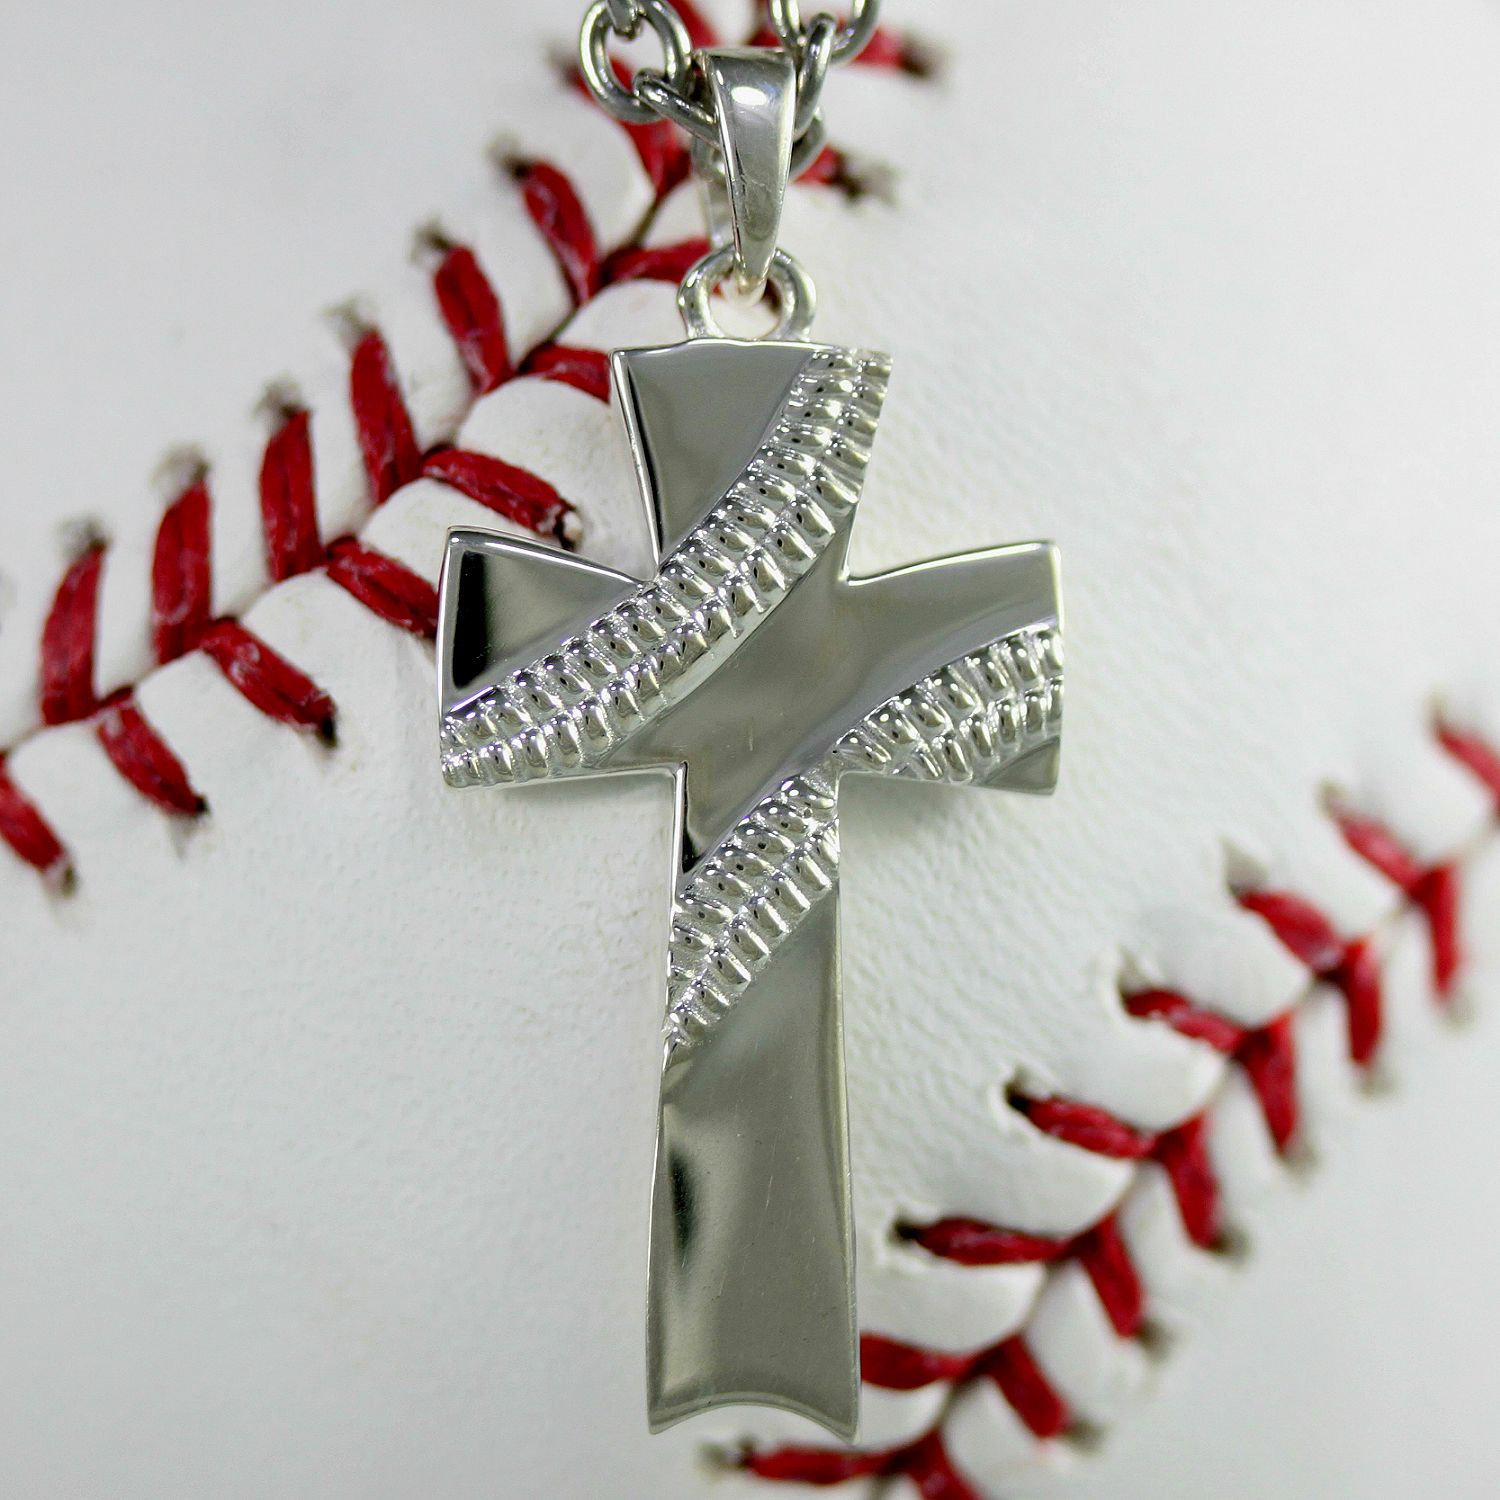 in chain palmbeach silver at pendant mens necklace detail steel cfm stainless baseball with cross products jewelry sterling